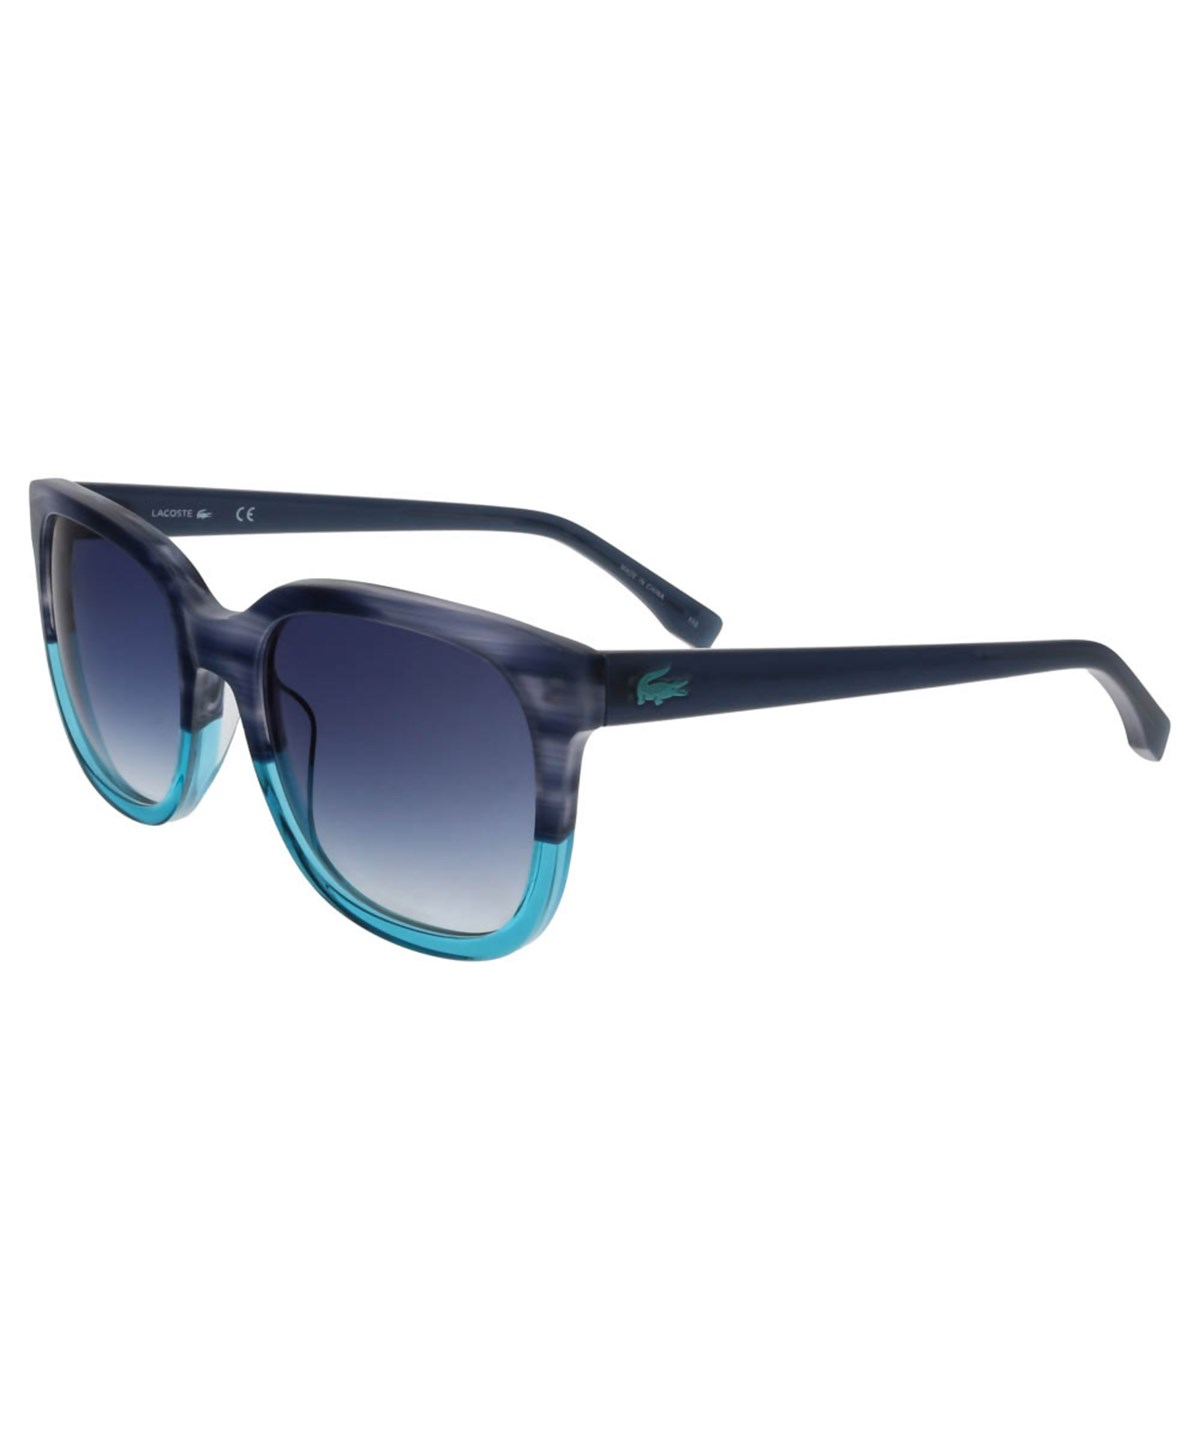 L815/S 424 BLUE SQUARE SUNGLASSES SUNGLASSES